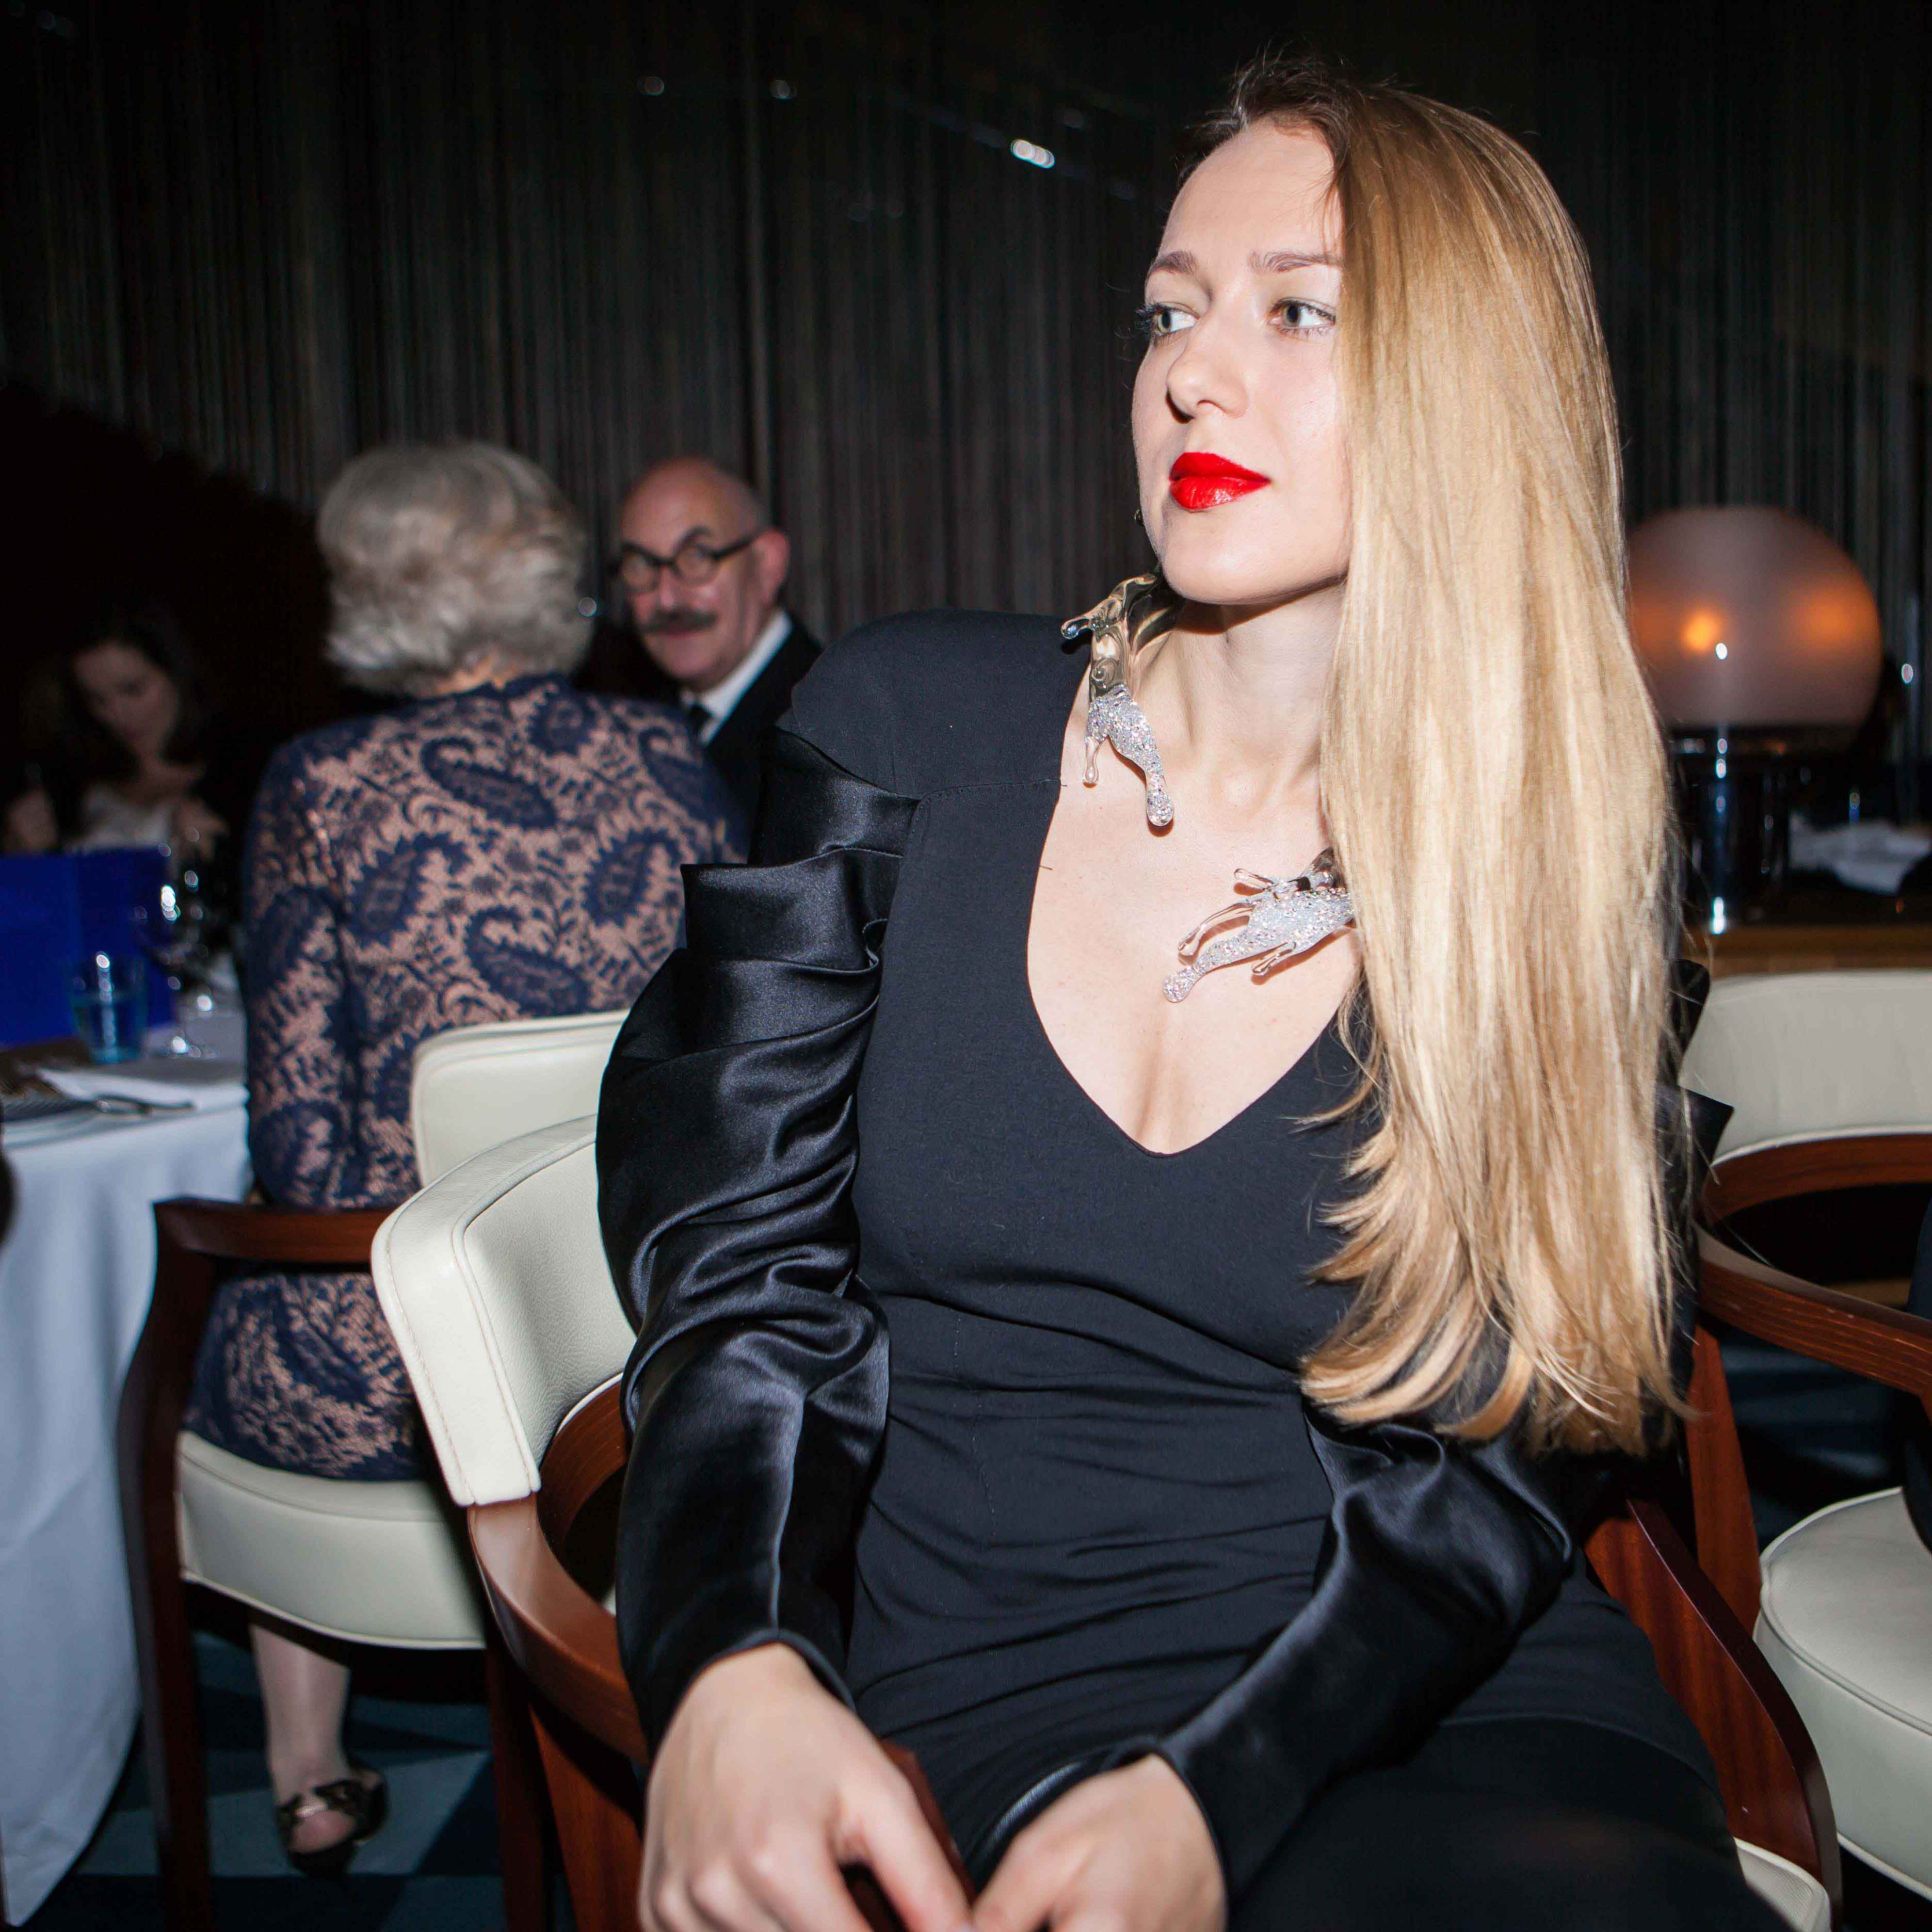 Bvlgari-bulgari-harrods-gala-dinner-london-gemologue-liza-urla-jewelry-blog-blog